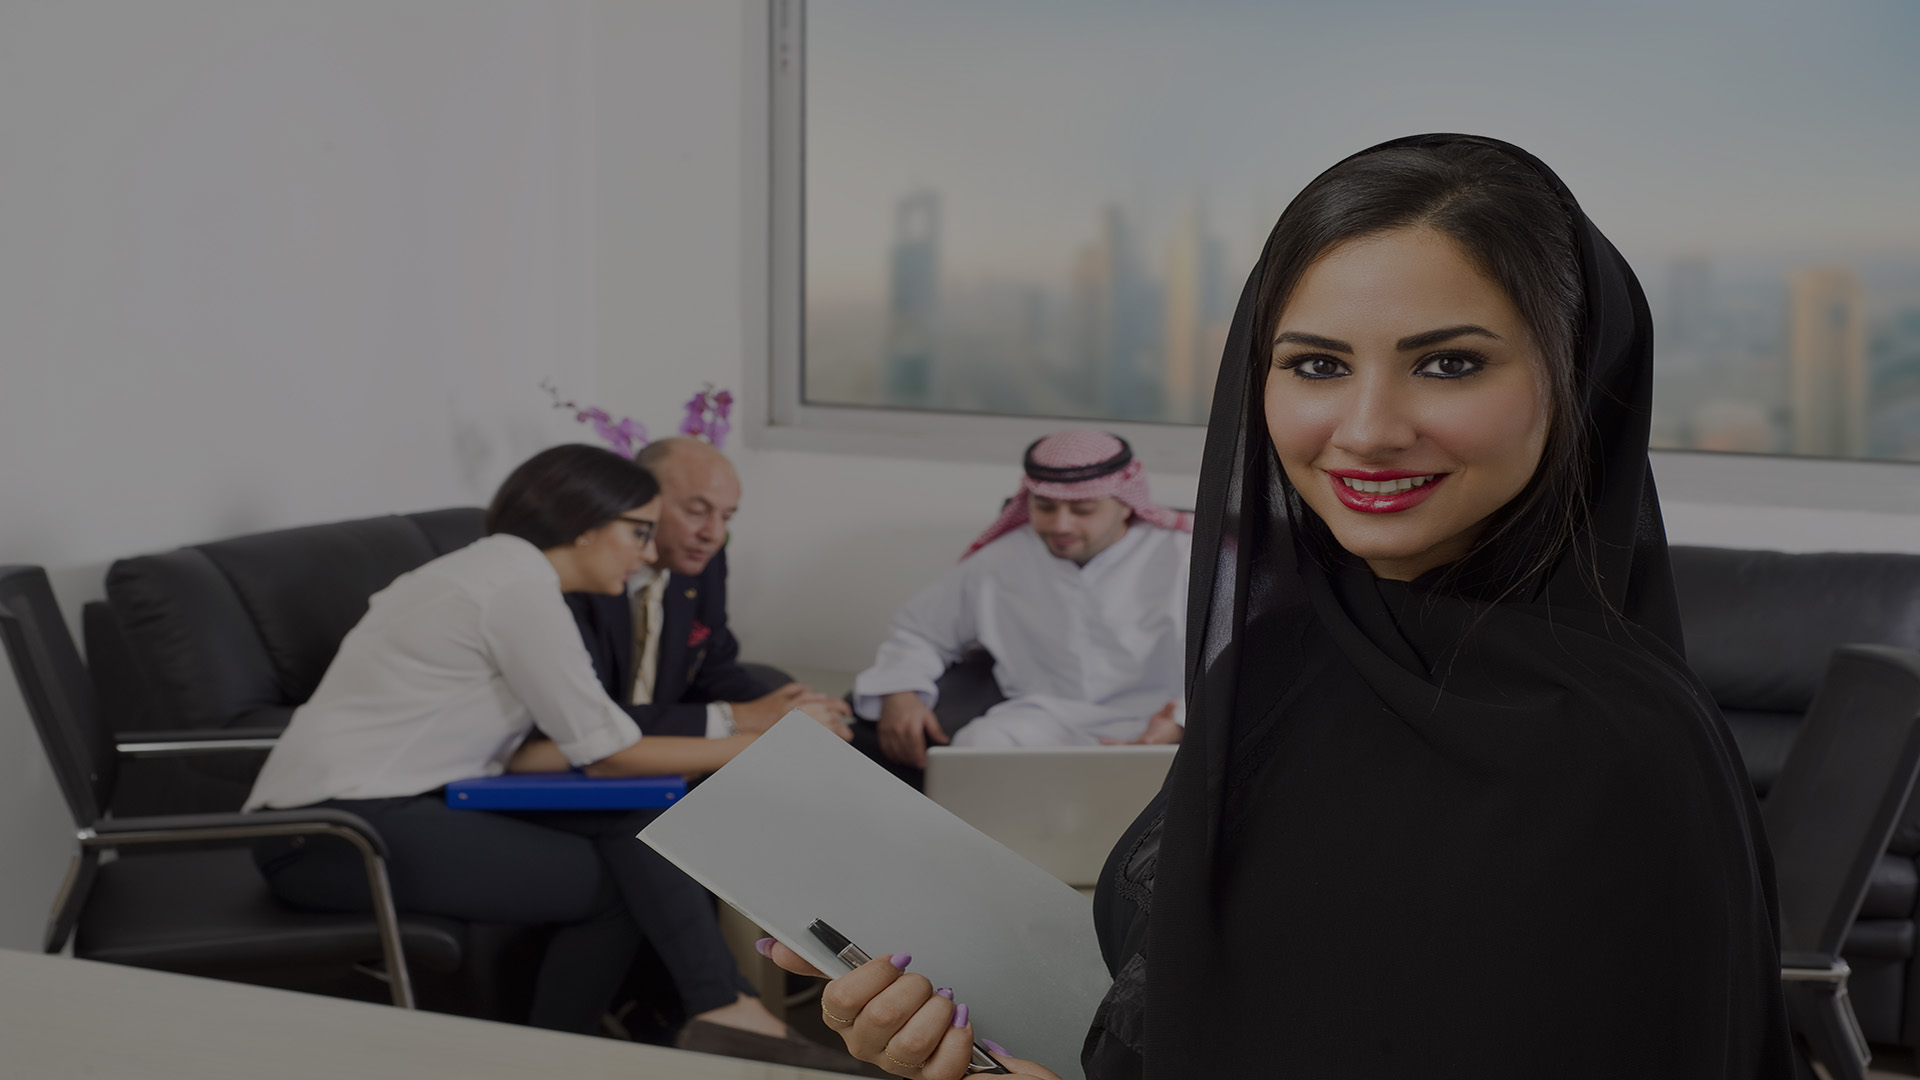 Attractive Muslim woman smiling in offices overlooking Dubai. Colleagues are having a business meeting in the background.